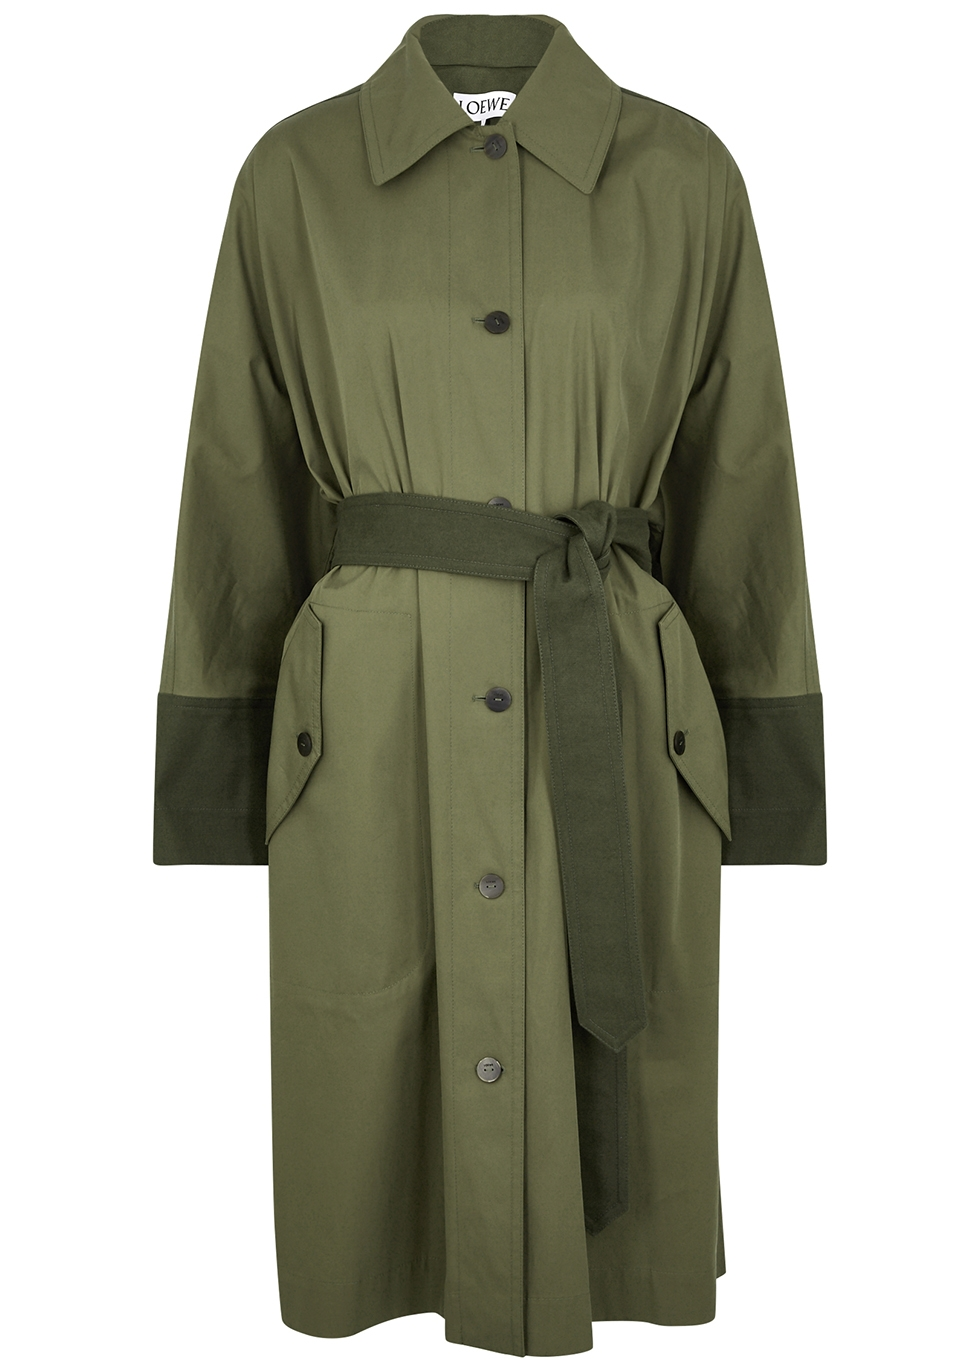 Army green panelled cotton trench coat